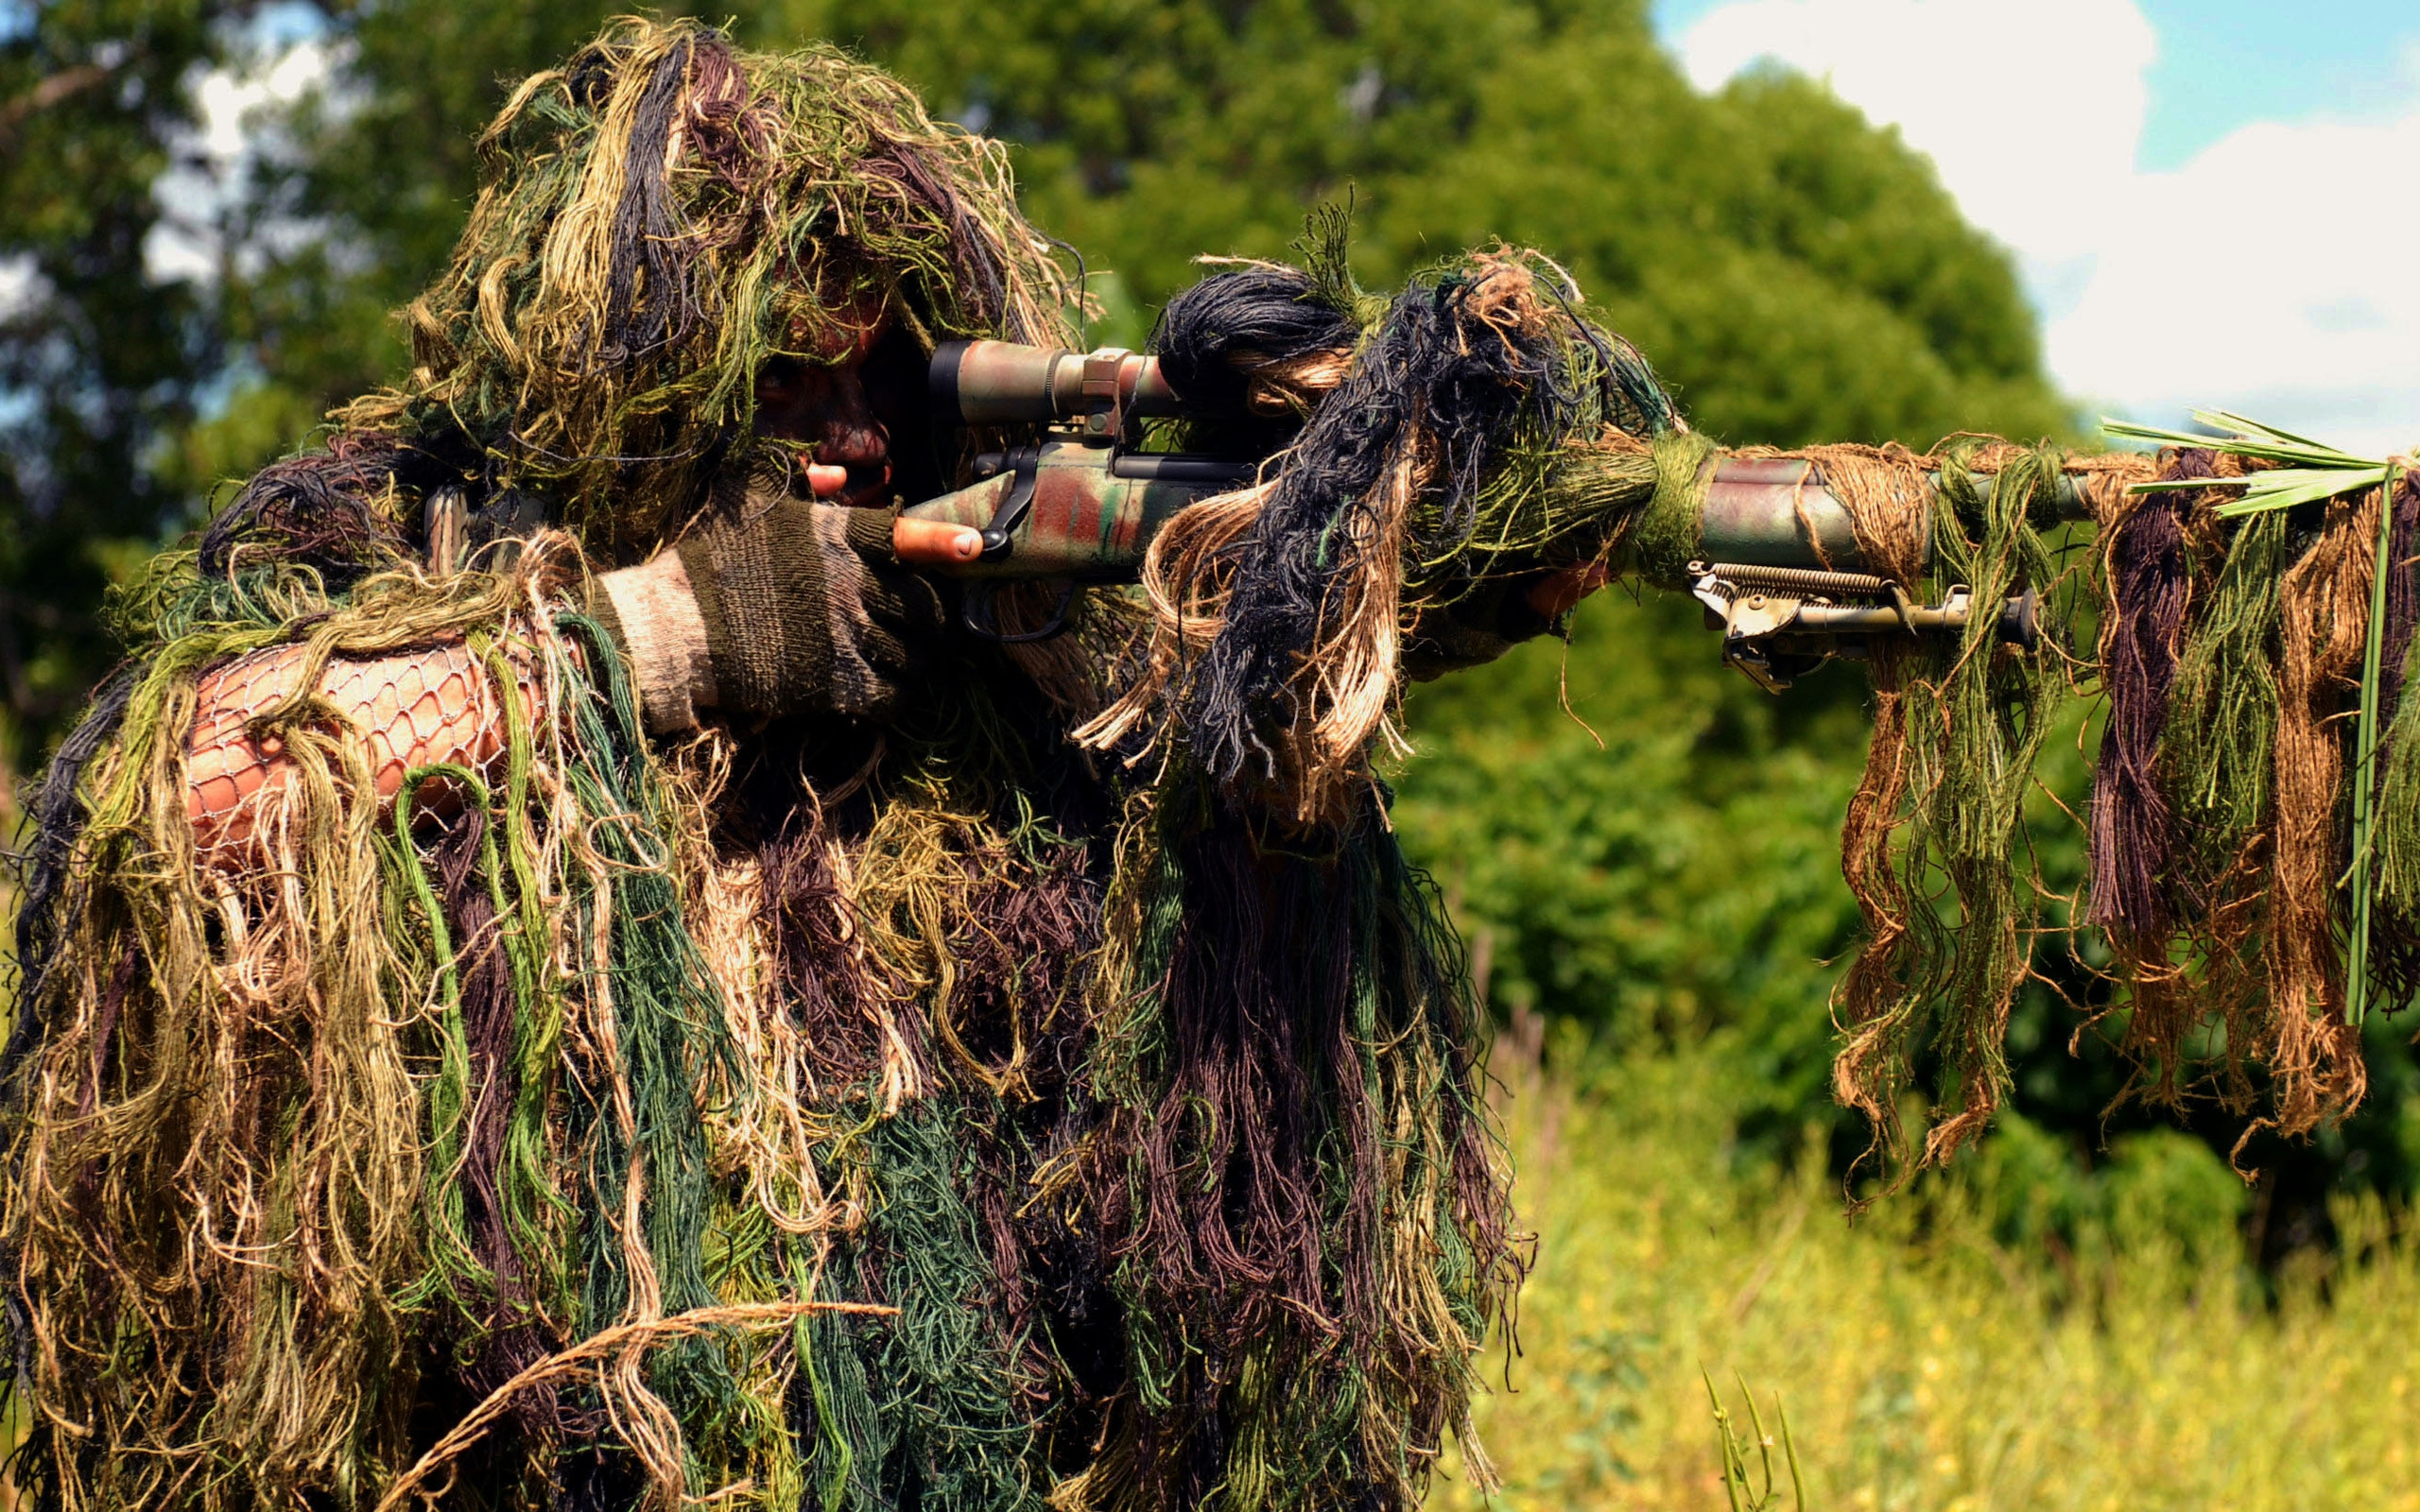 72 Ghillie Suit Wallpapers On Wallpaperplay: Sniper HD Wallpaper